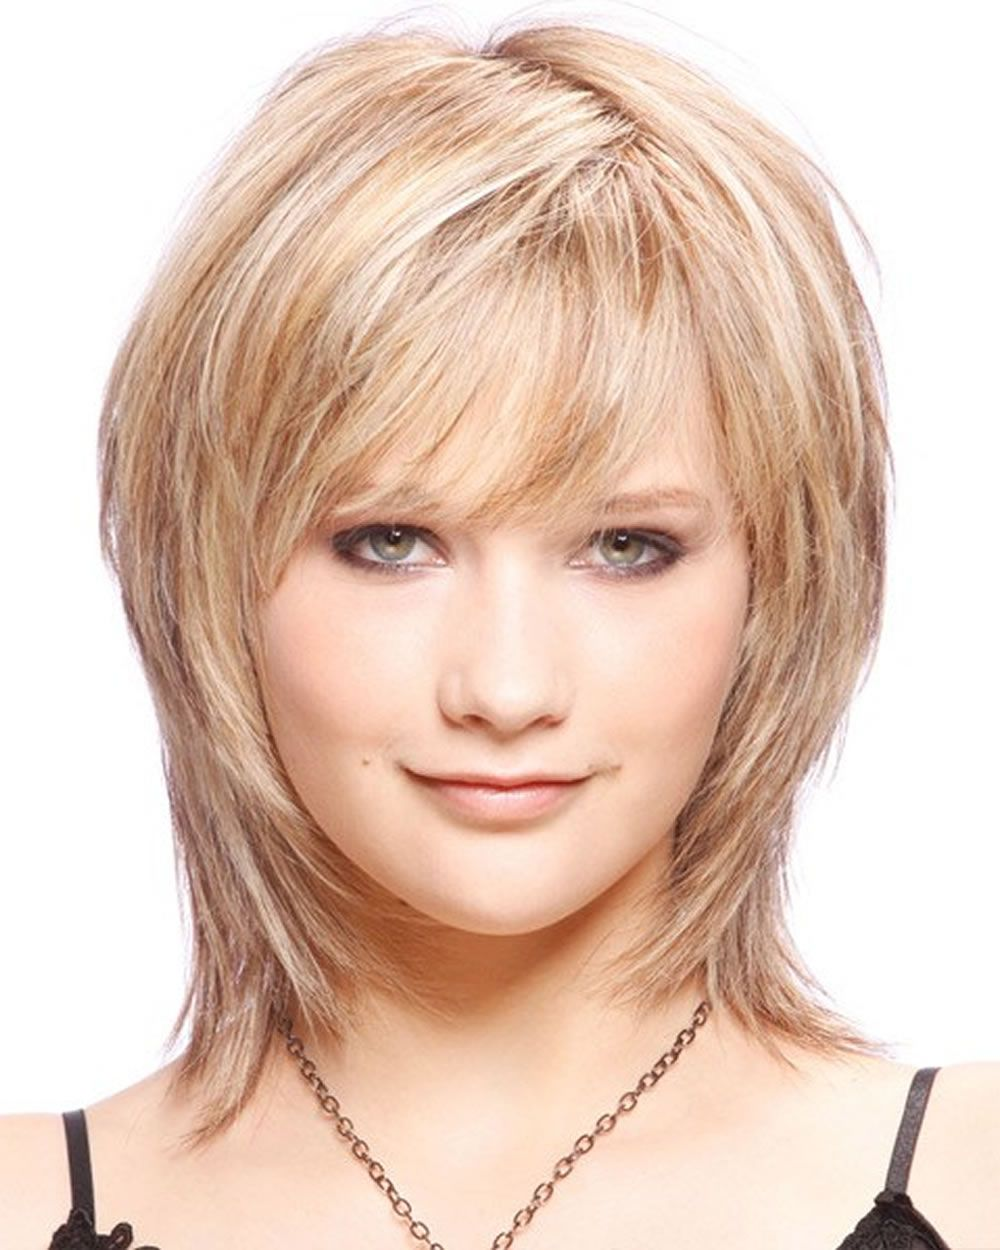 Shoulder Length Hairstyles For Fine Hair 2020 41